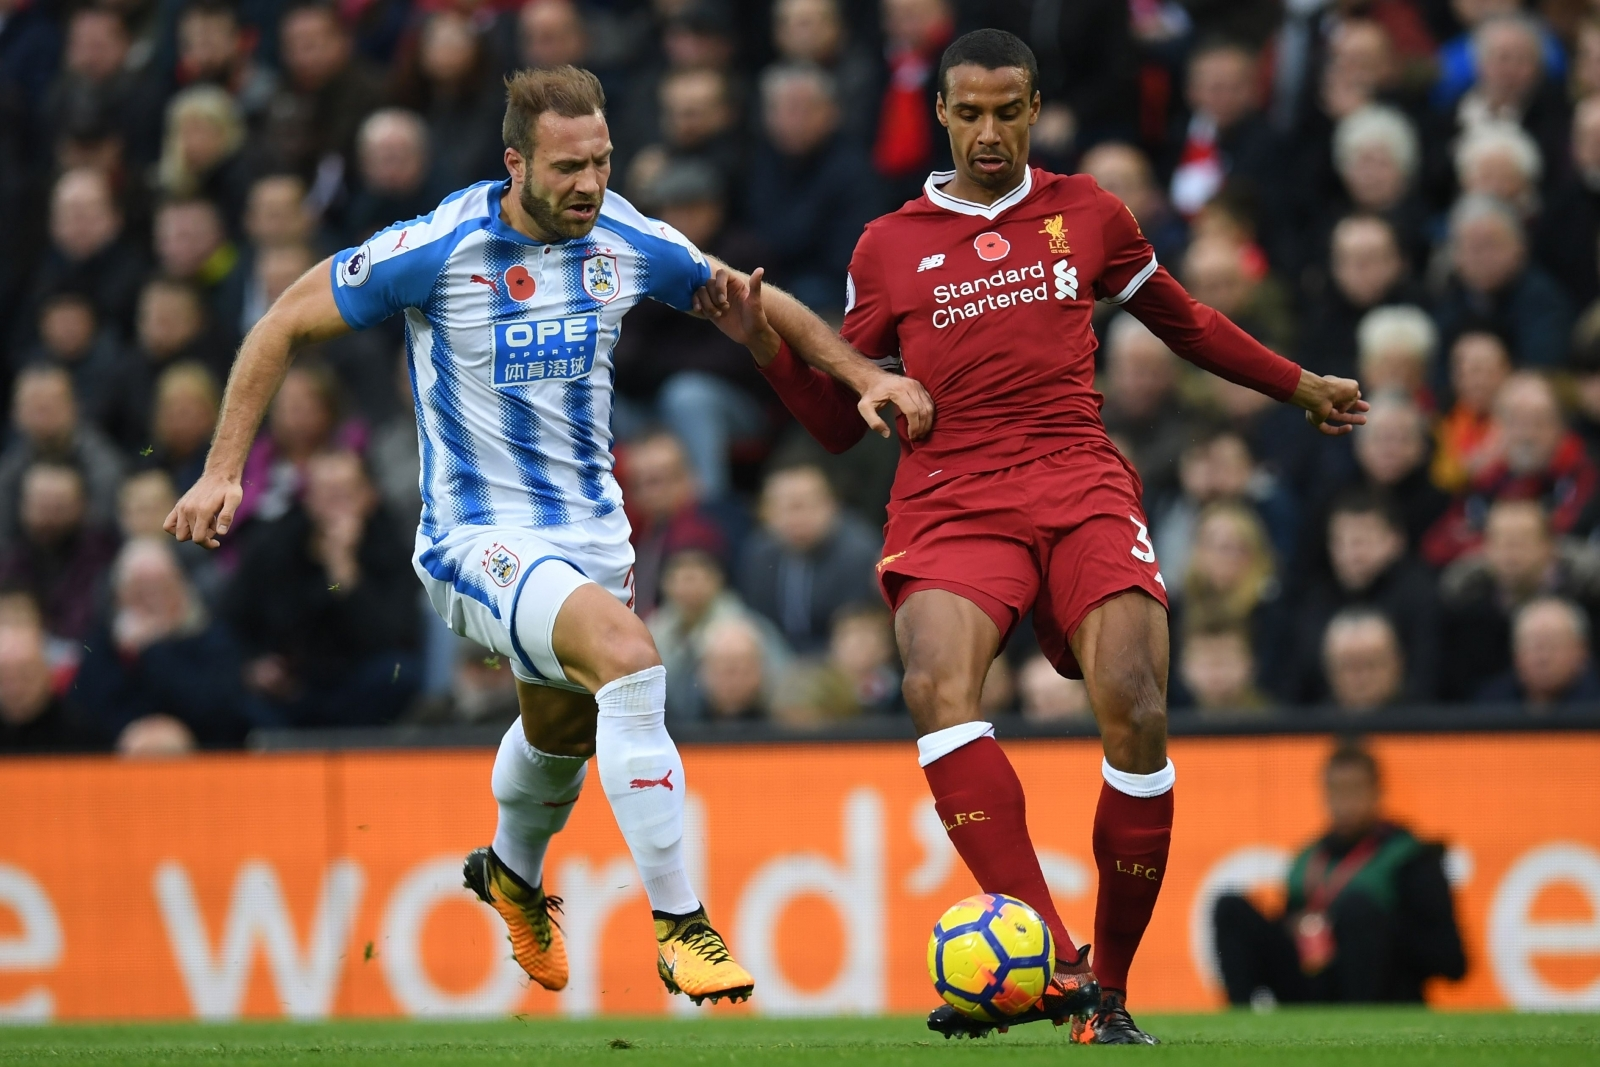 Laurent Depoitre and Joel Matip